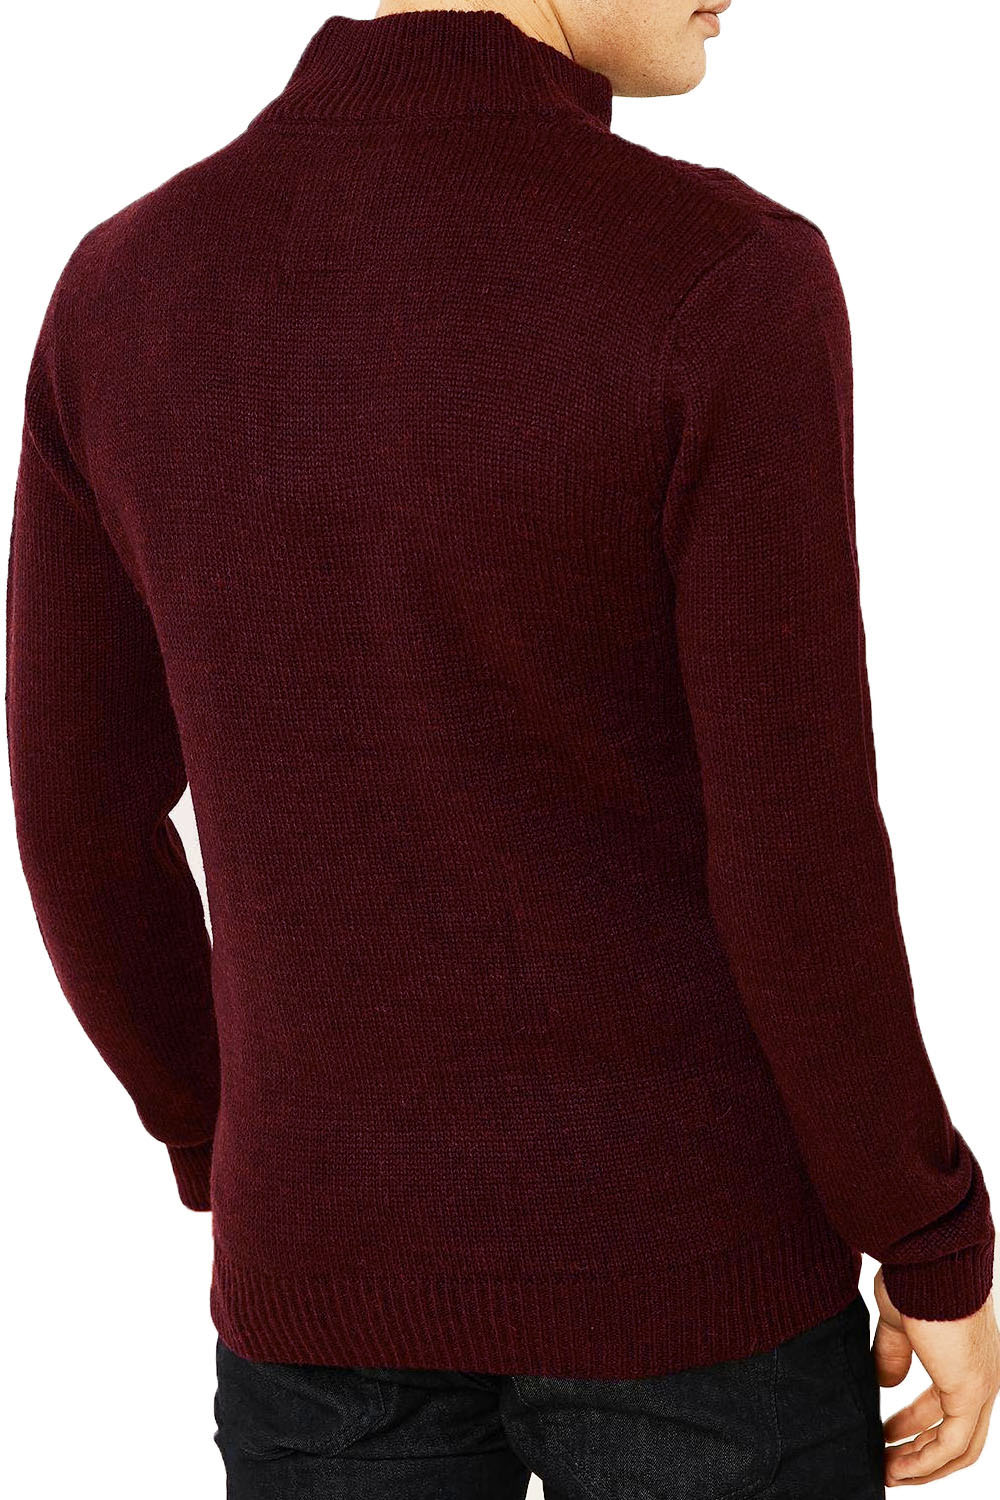 Threadbare-Wray-Mens-Top-Cable-Knited-Designer-Luxurious-Wool-Mix-Raglan-Jumpers thumbnail 8